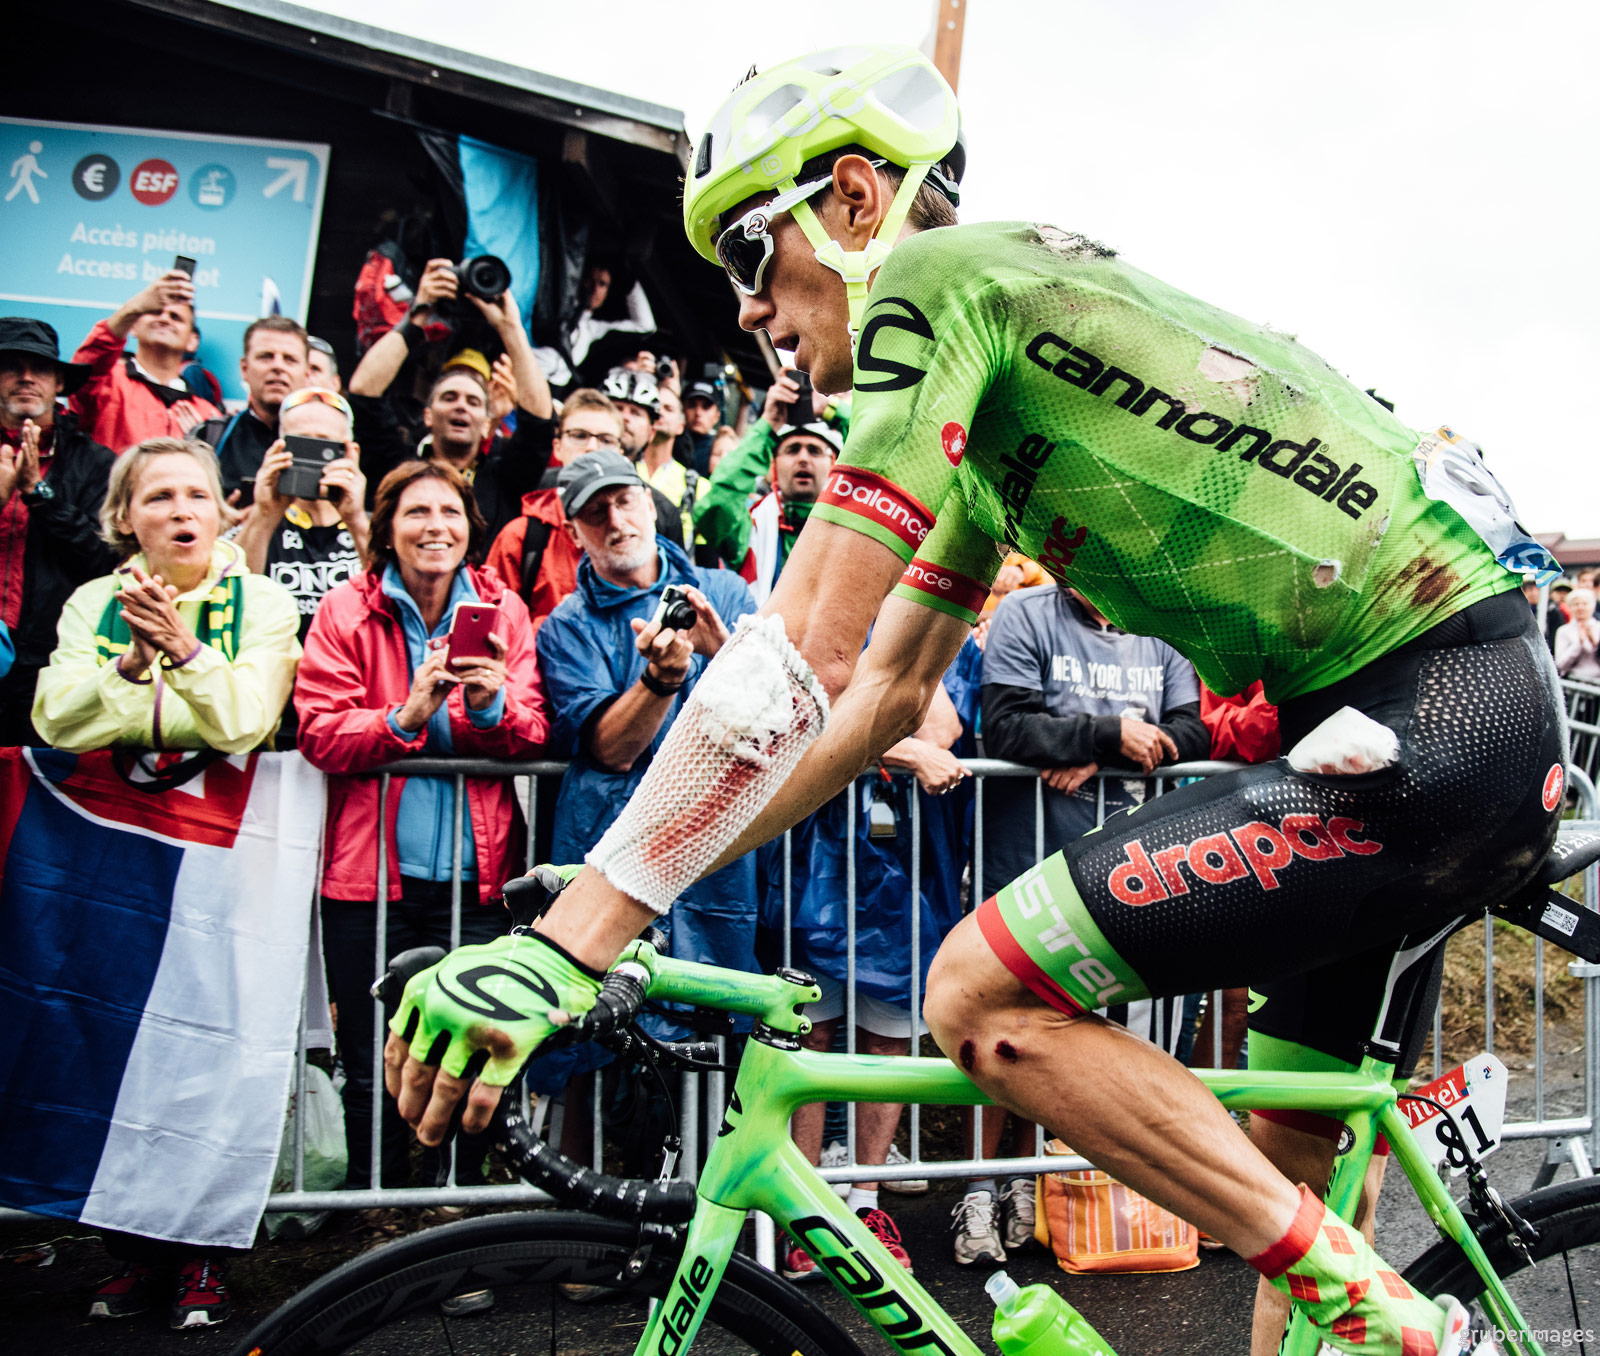 Battered and bruised, Pierre Rolland (Cannondale) crosses the line at the end of stage 19 of the 2016 Tour de France.